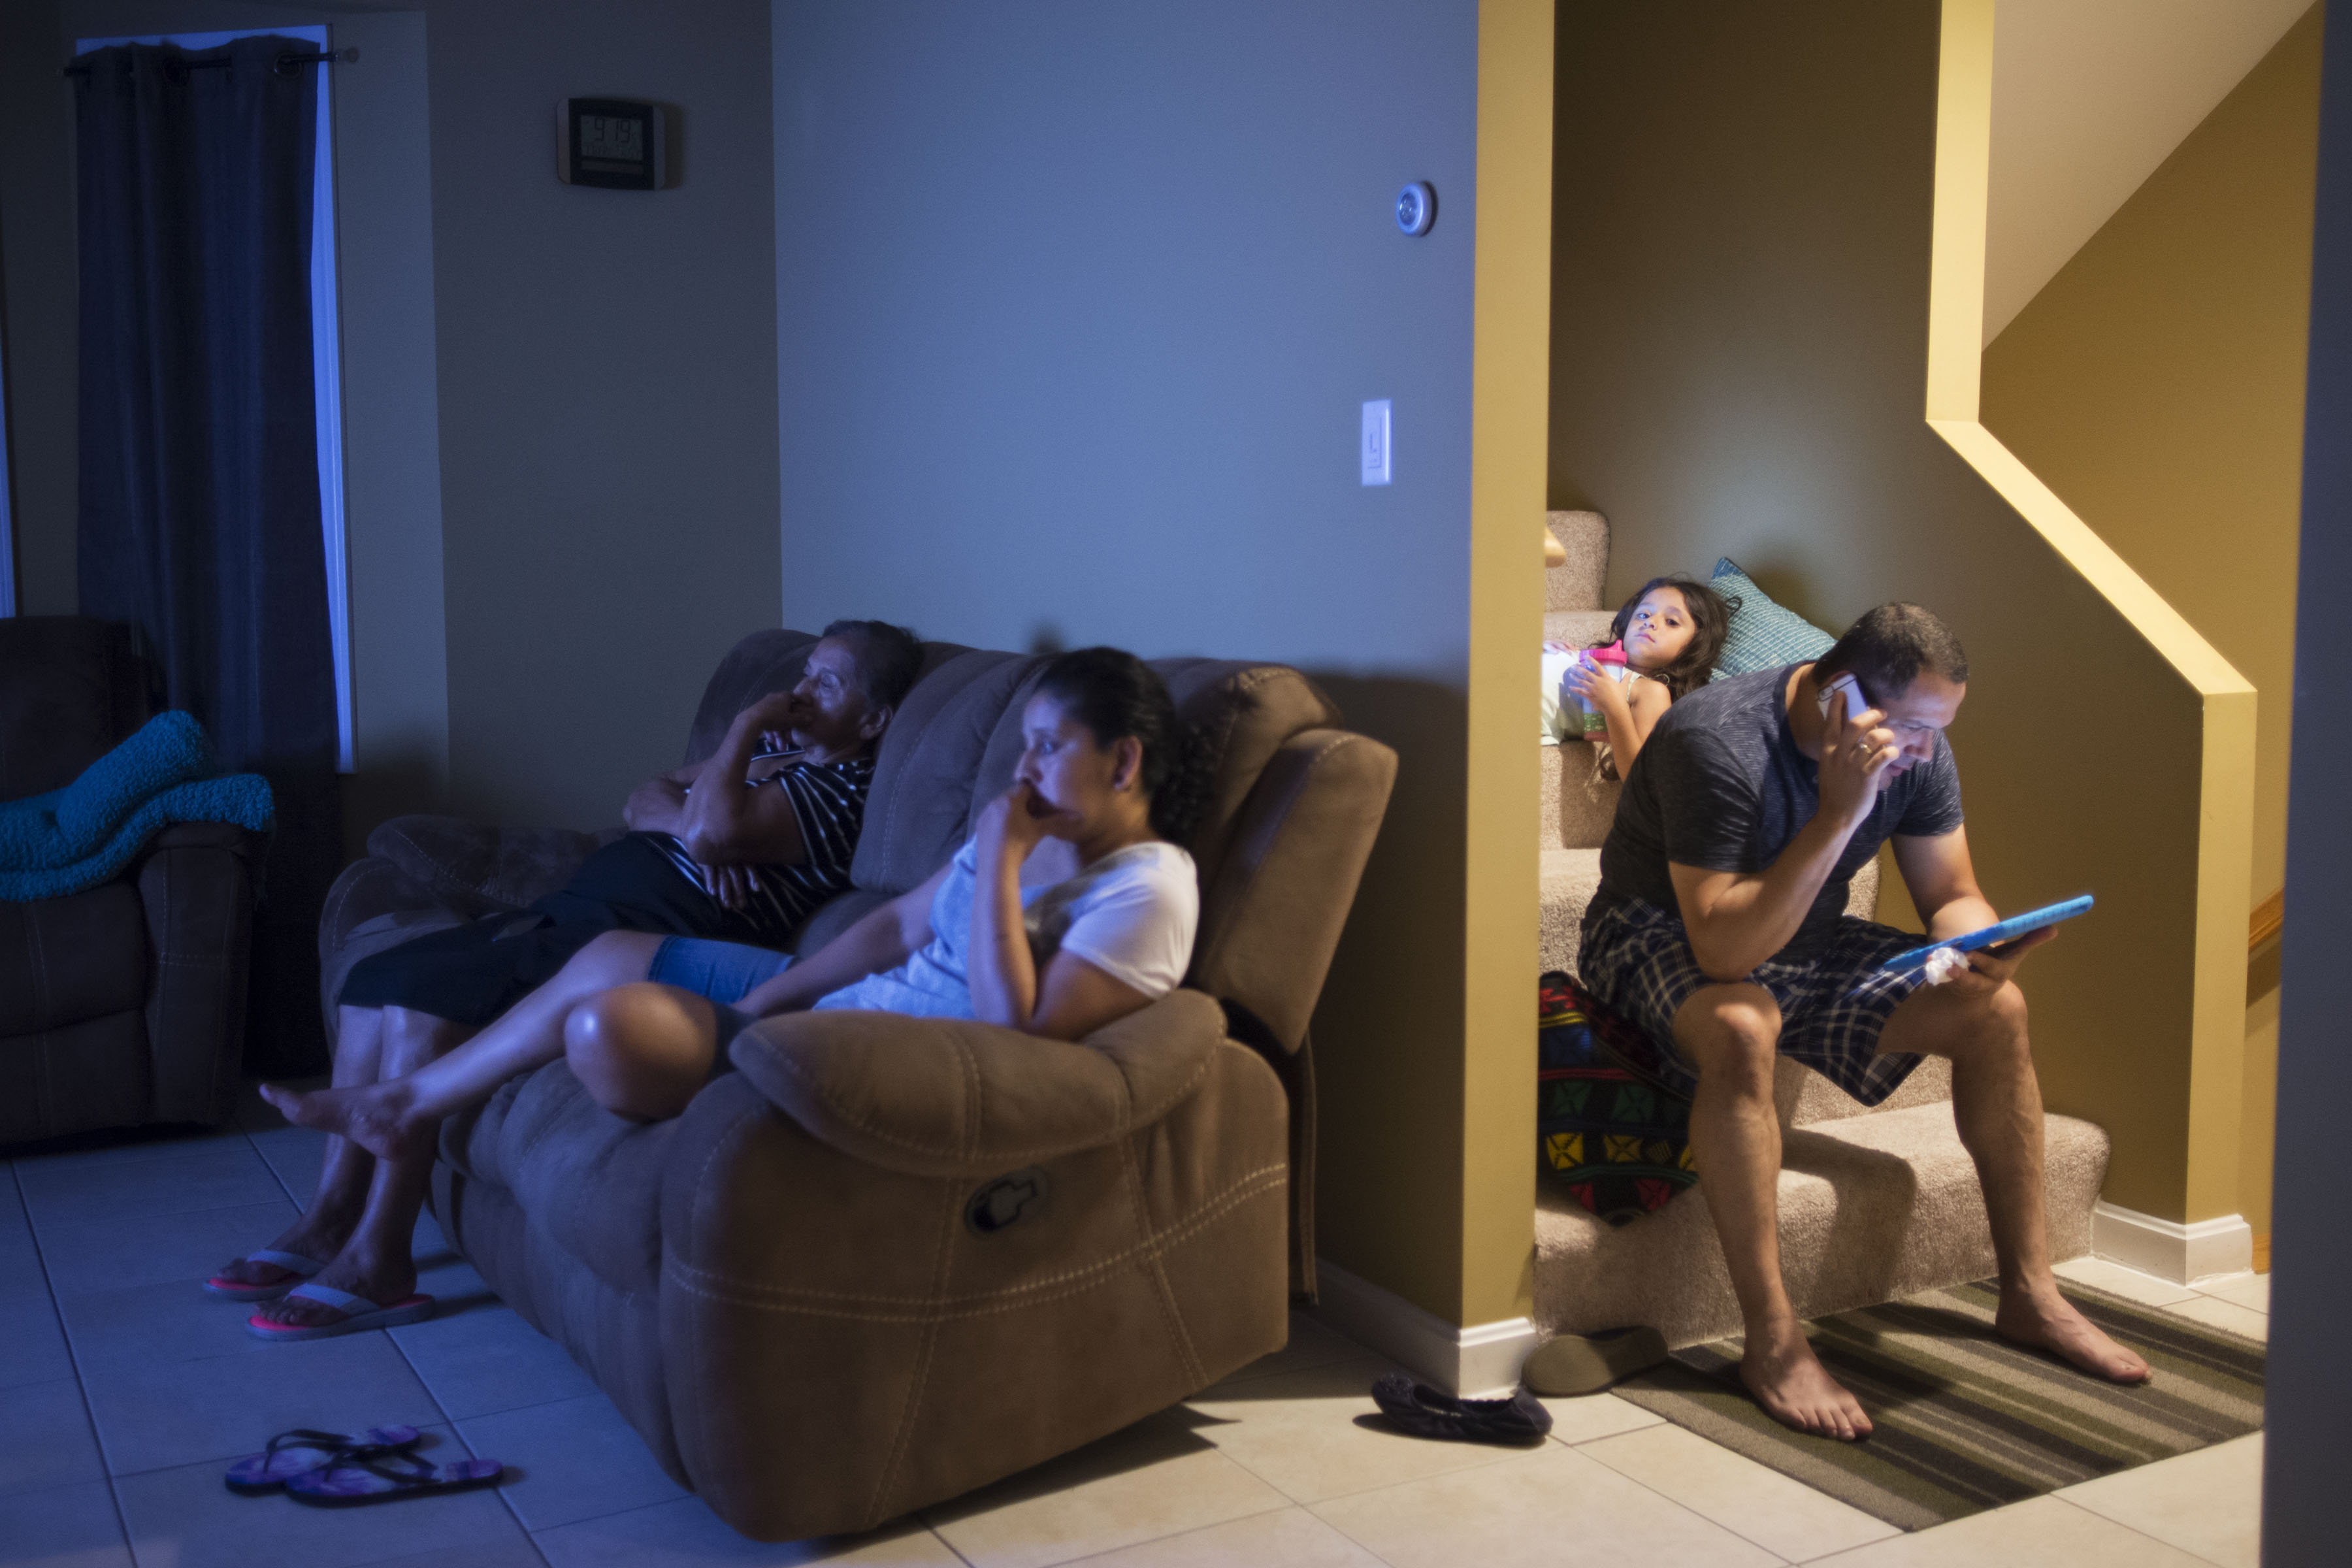 A typical evening at the Calderon household consists of my mother watching spanish soap operas and my stepfather reading on his iPad. My grandmother (far left) visits from Guatemala. We live 30 mins outside of Boston, in Lawrence, Massachusetts. We have been here for over 7 years. This is our first family-owned house in the United States. (Photo by Iaritza Menjivar/GroundTruth)